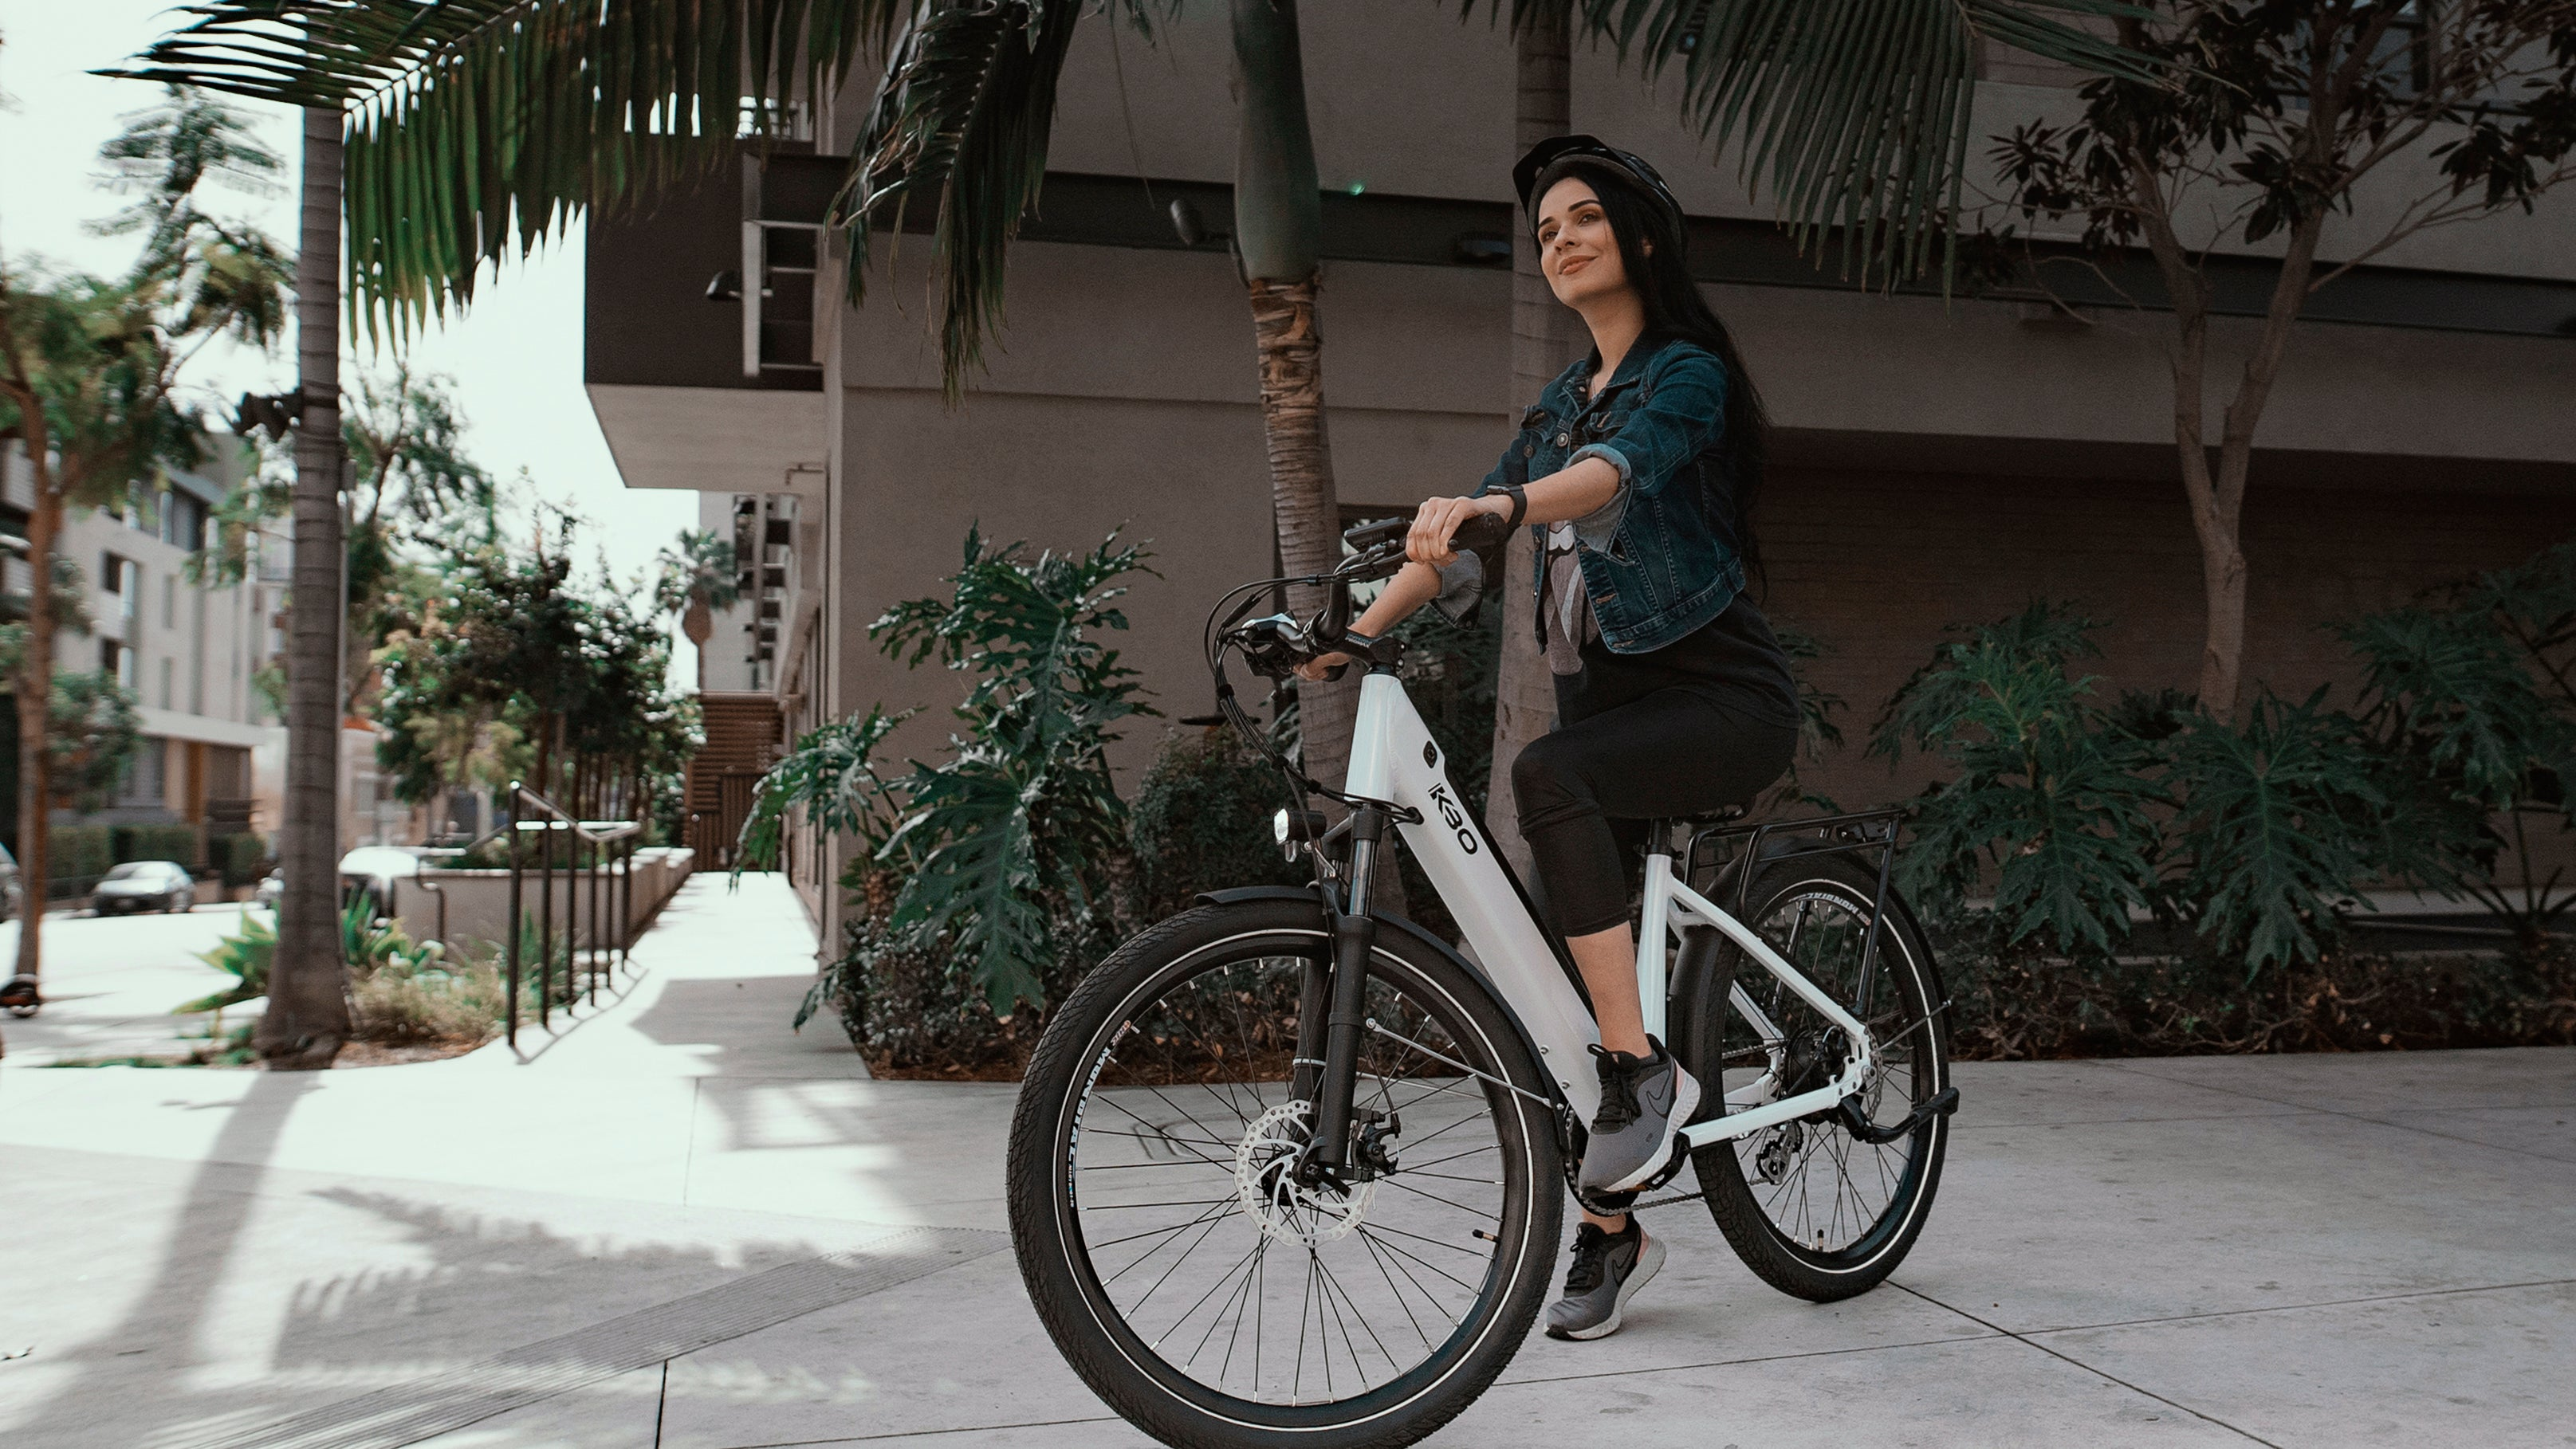 THREE WAYS ELECTRIC BIKES CAN SAVE OUR PLANET